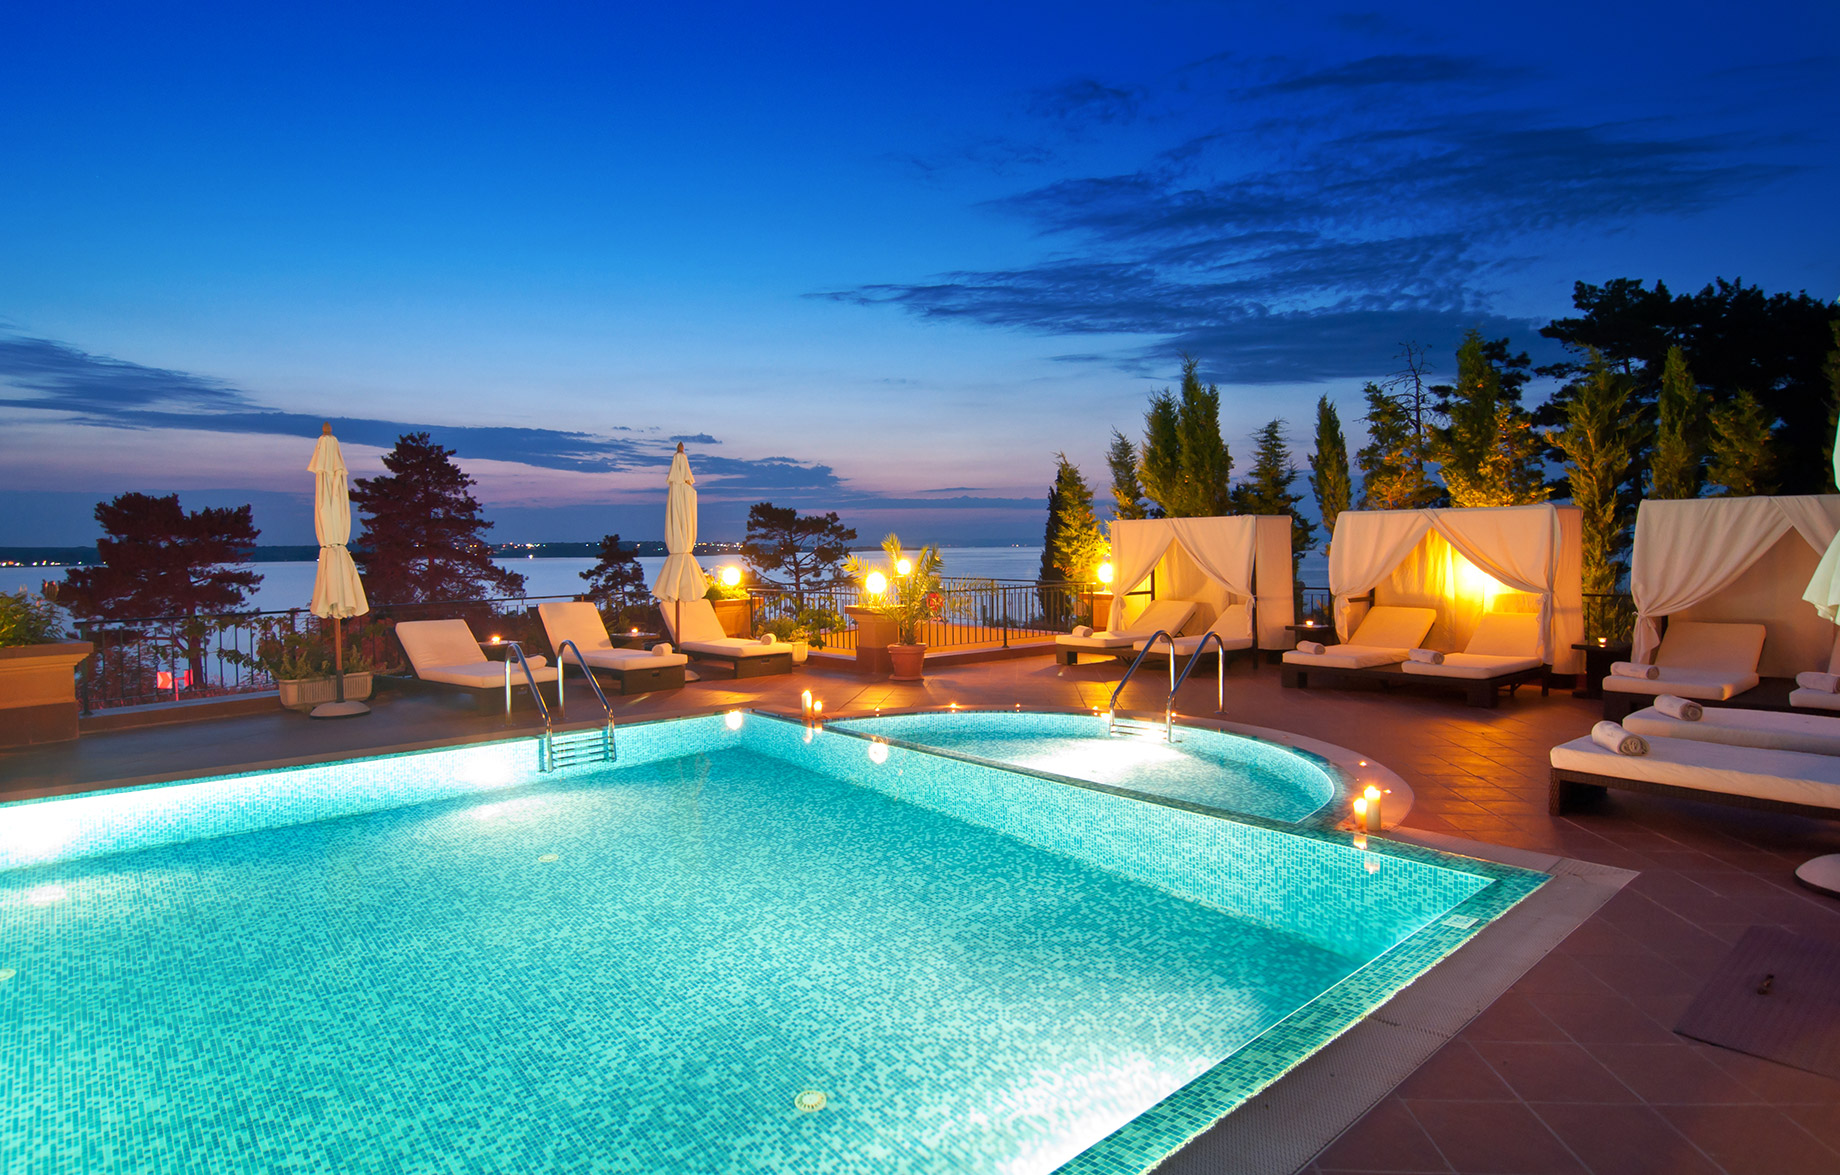 Luxury Travel – Poolside at Night with Sea Views